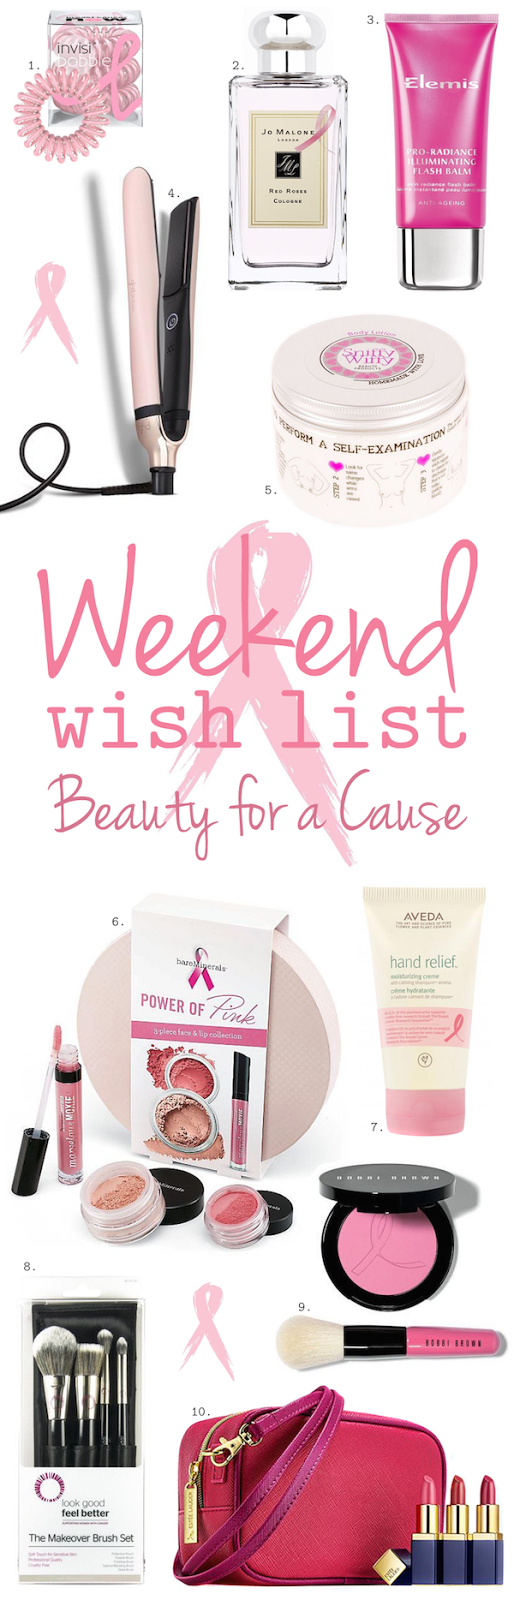 Weekend Wish List – Beauty For A Cause